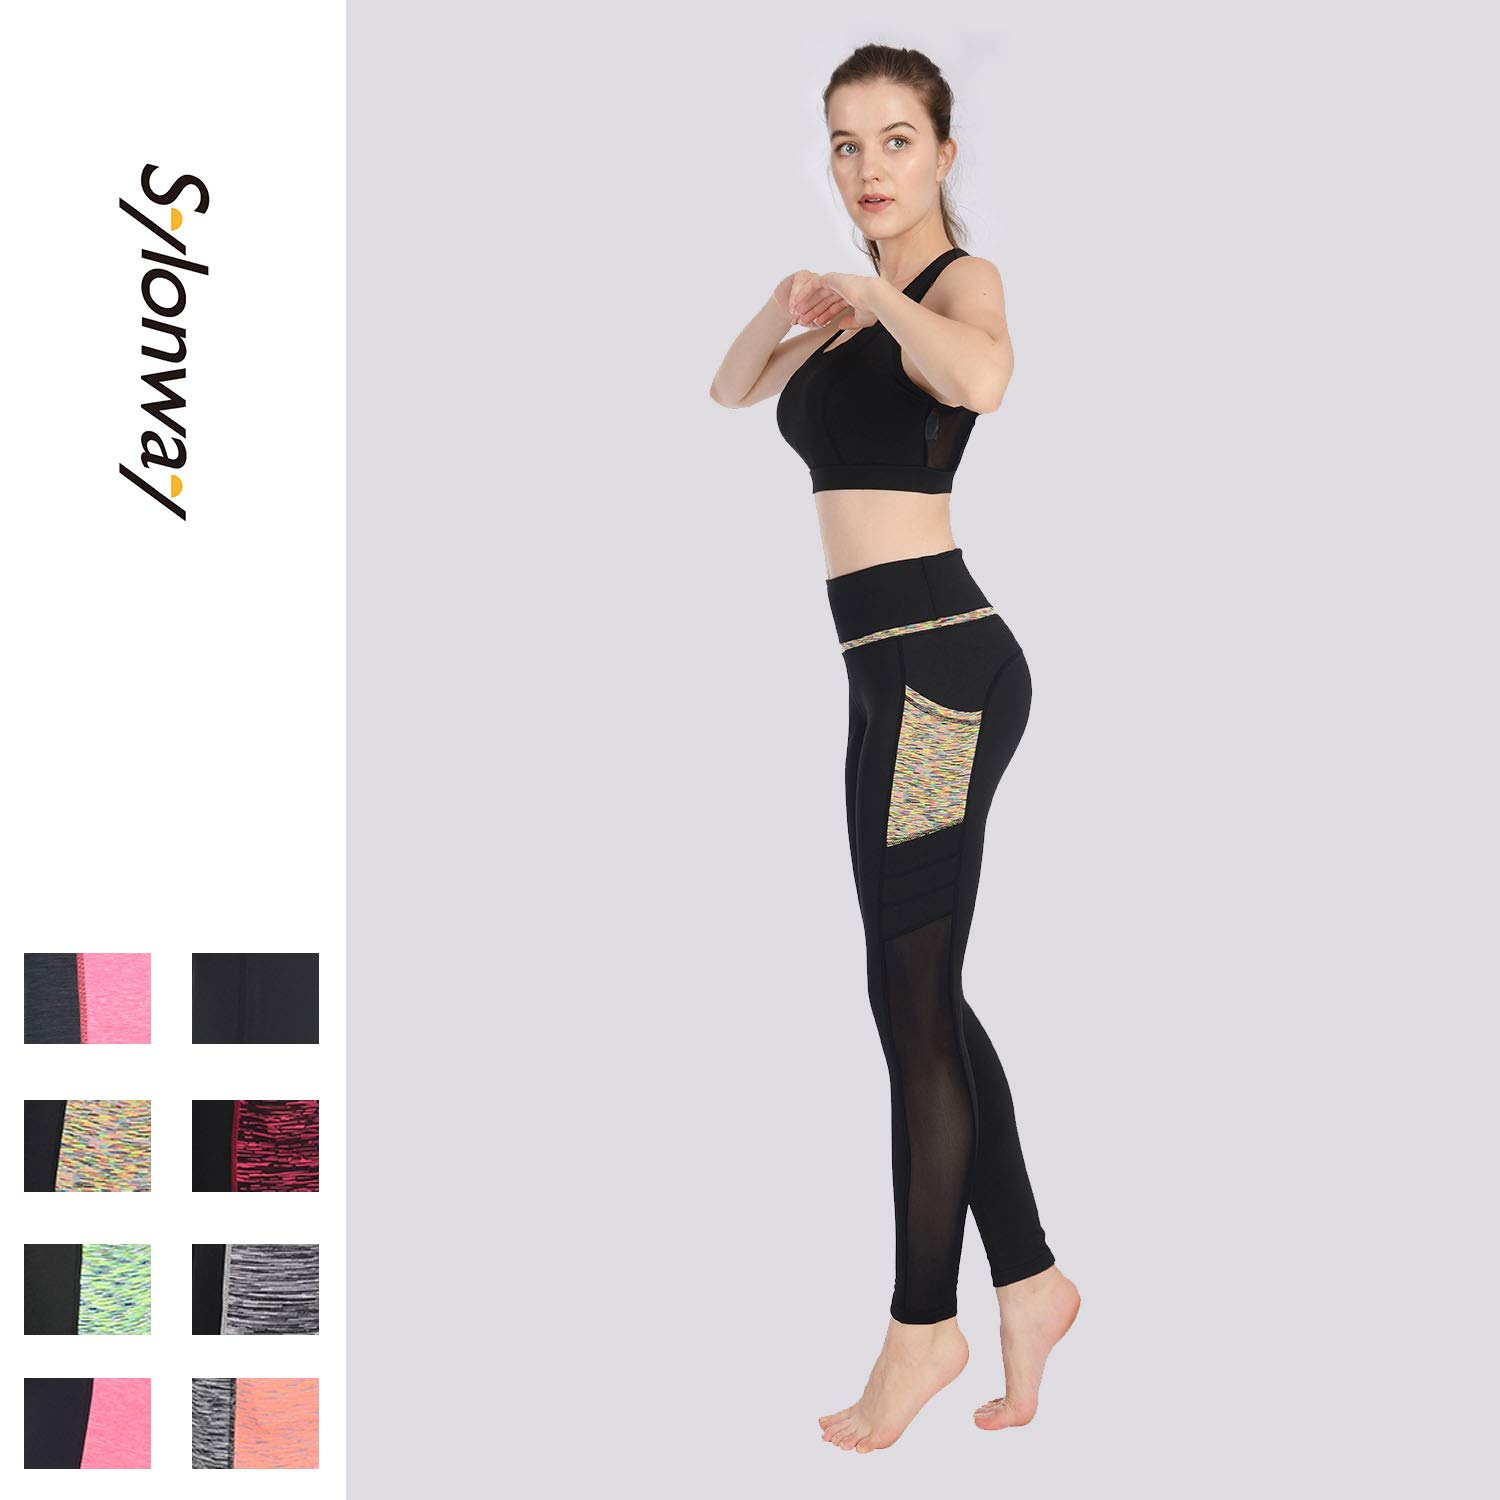 Sylonway Womens High Waist Yoga Pants with Pockets /& Mesh Tummy Control Workout Running Leggings for Sports Fitness Gym HB02//HB03